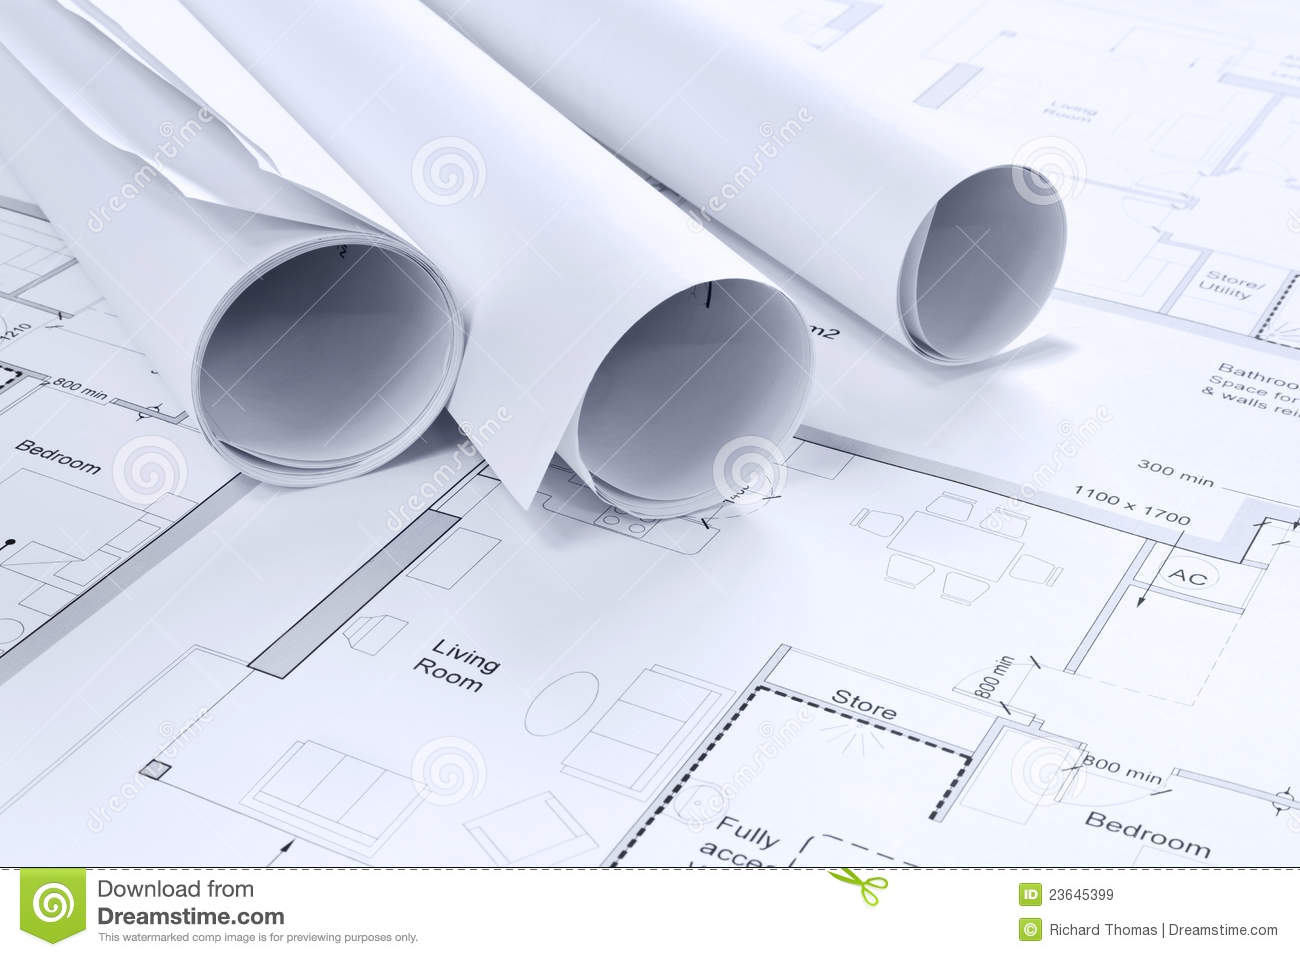 Architectural drawings background stock image image of for Free online architecture design